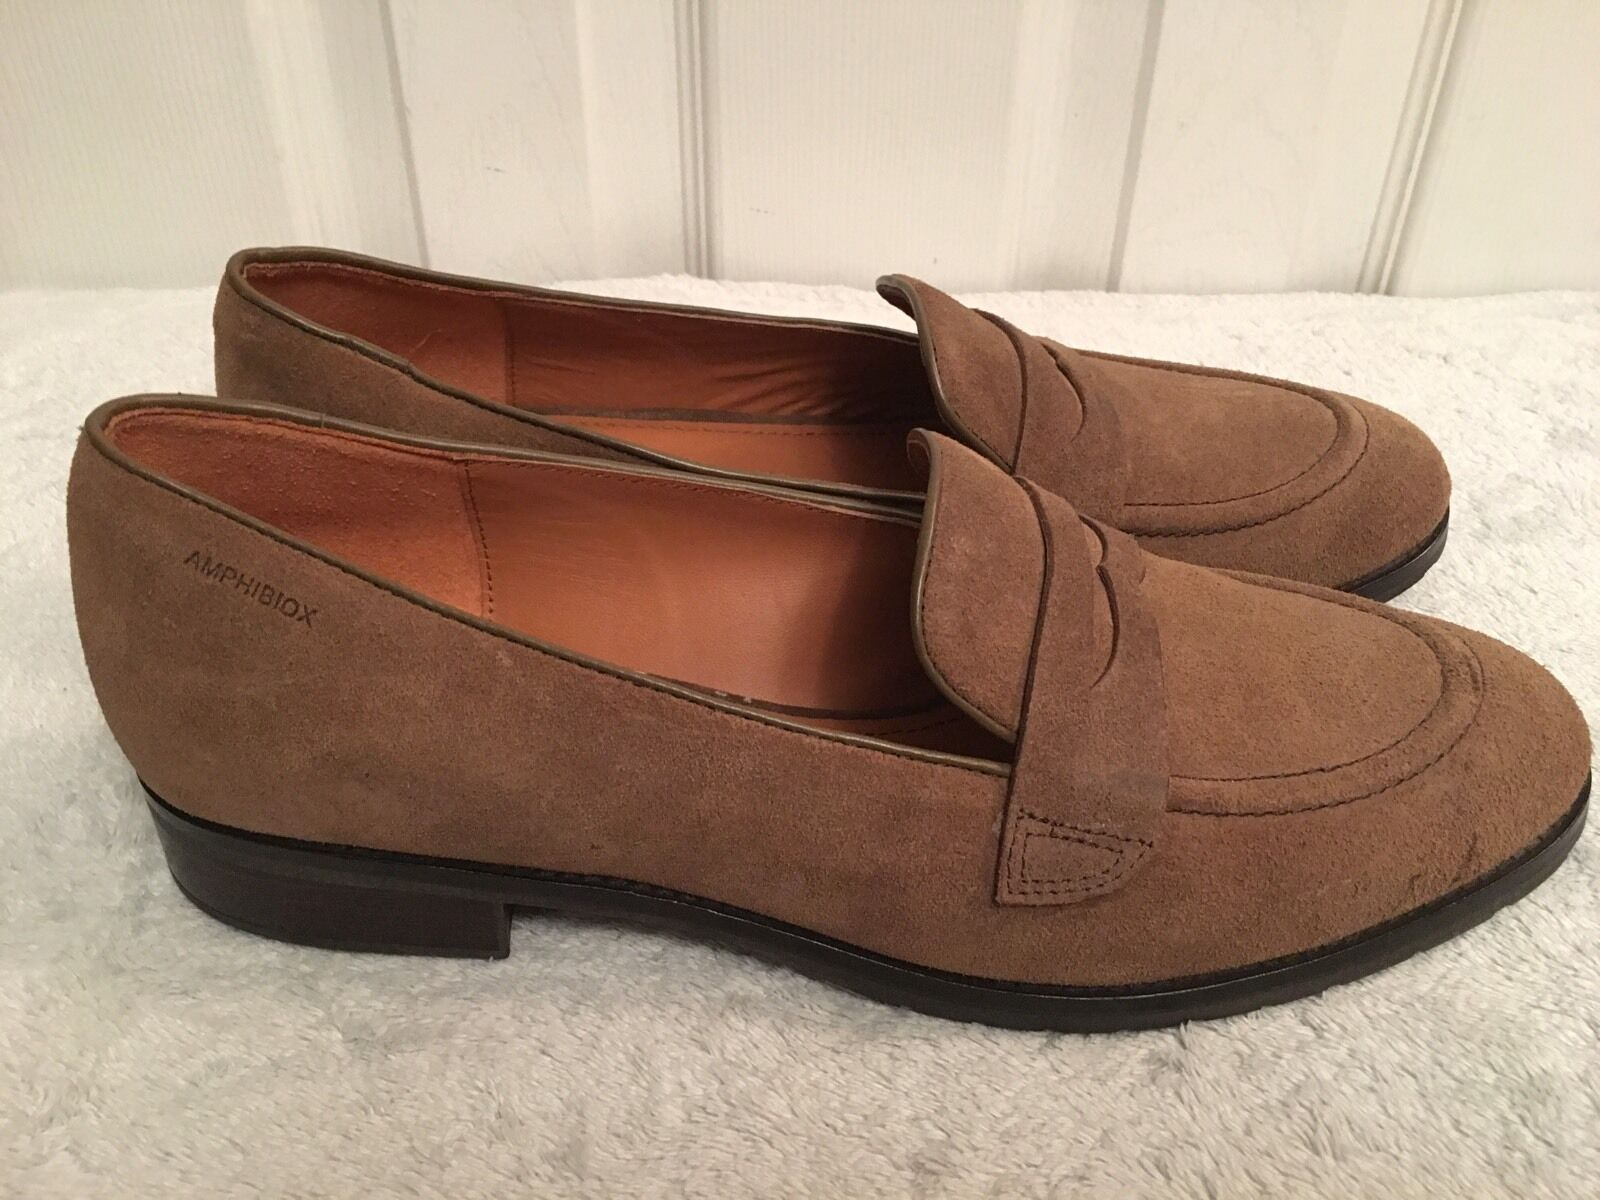 GEOX RESPIRA AMPHIBIOX WALLIS BROWN SUEDE LOAFER SHOES  41 RRP